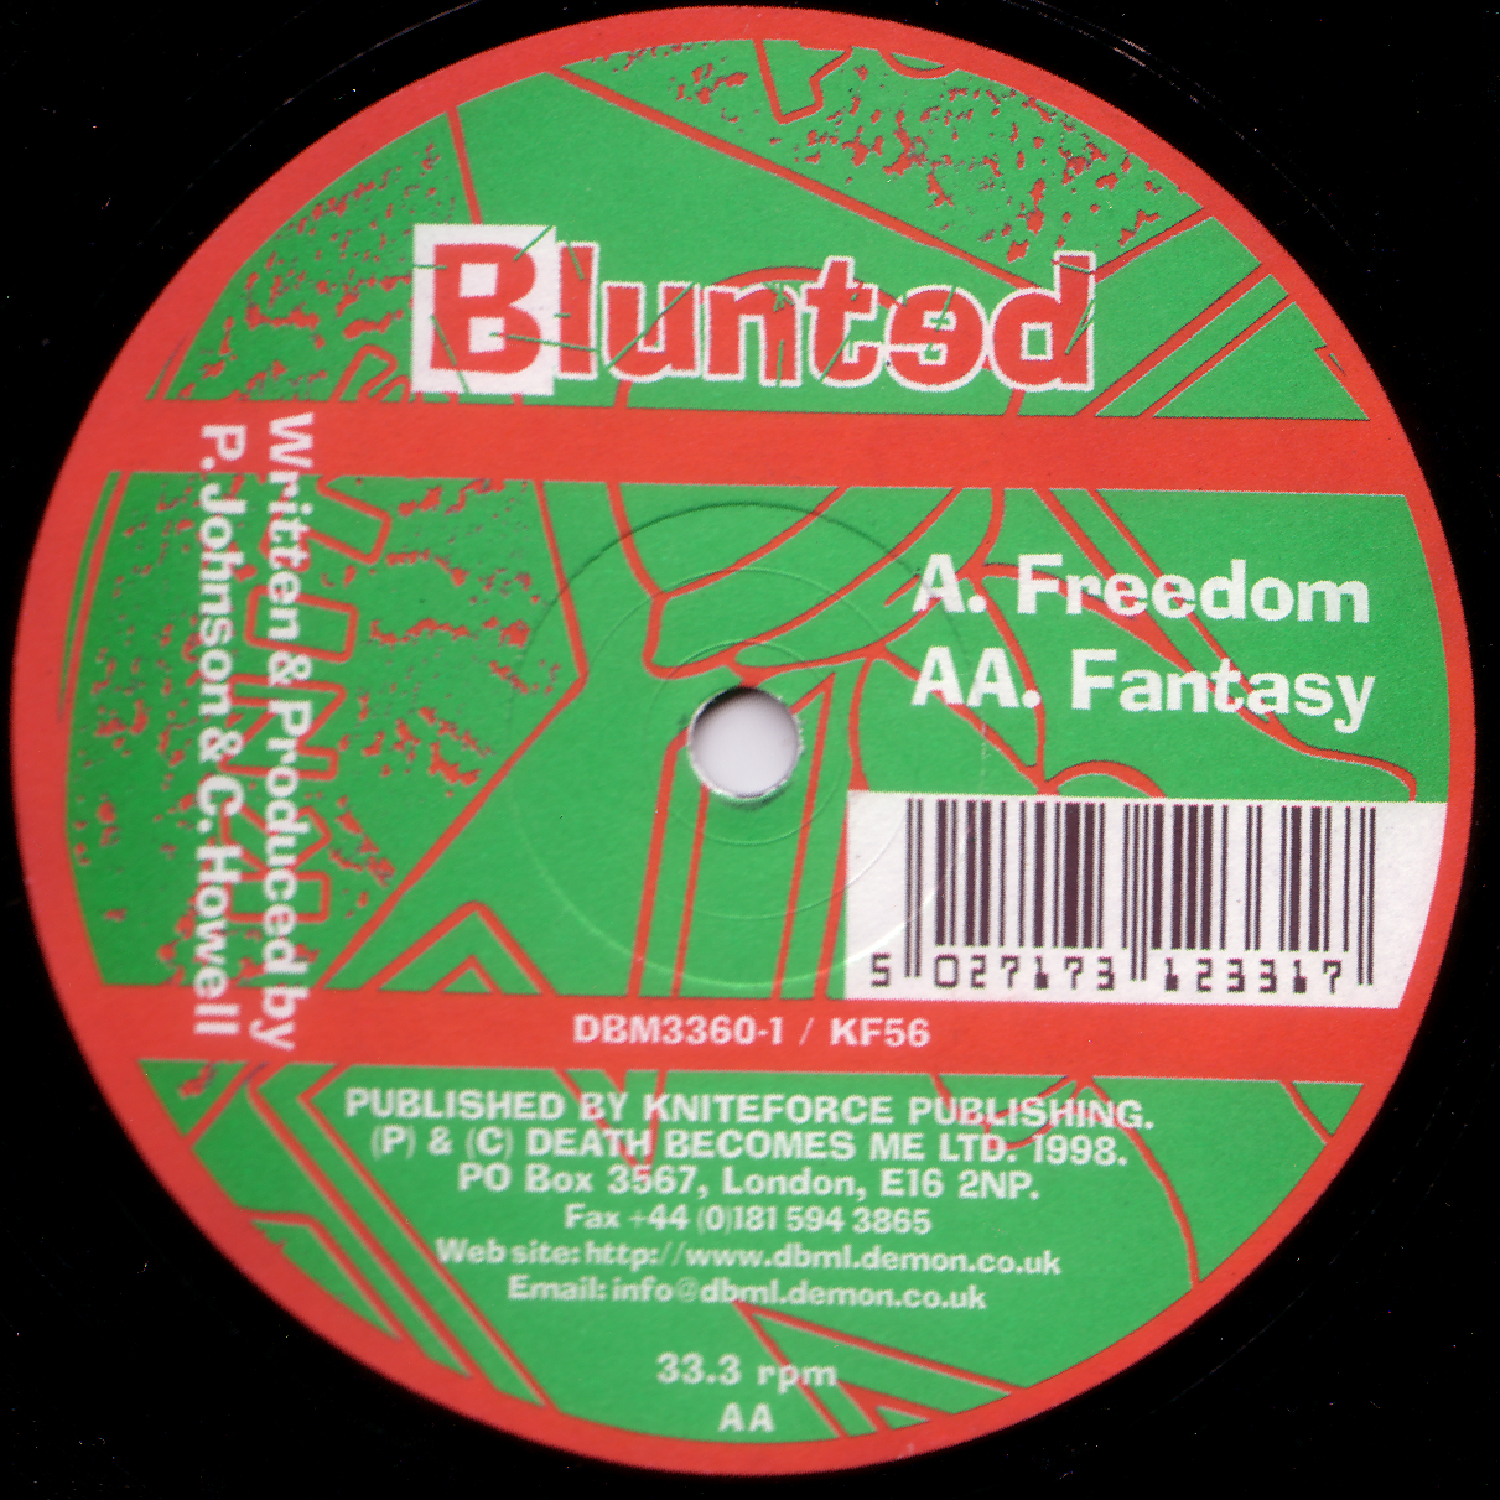 [KF056] Blunted - Freedom EP (Digital Only)